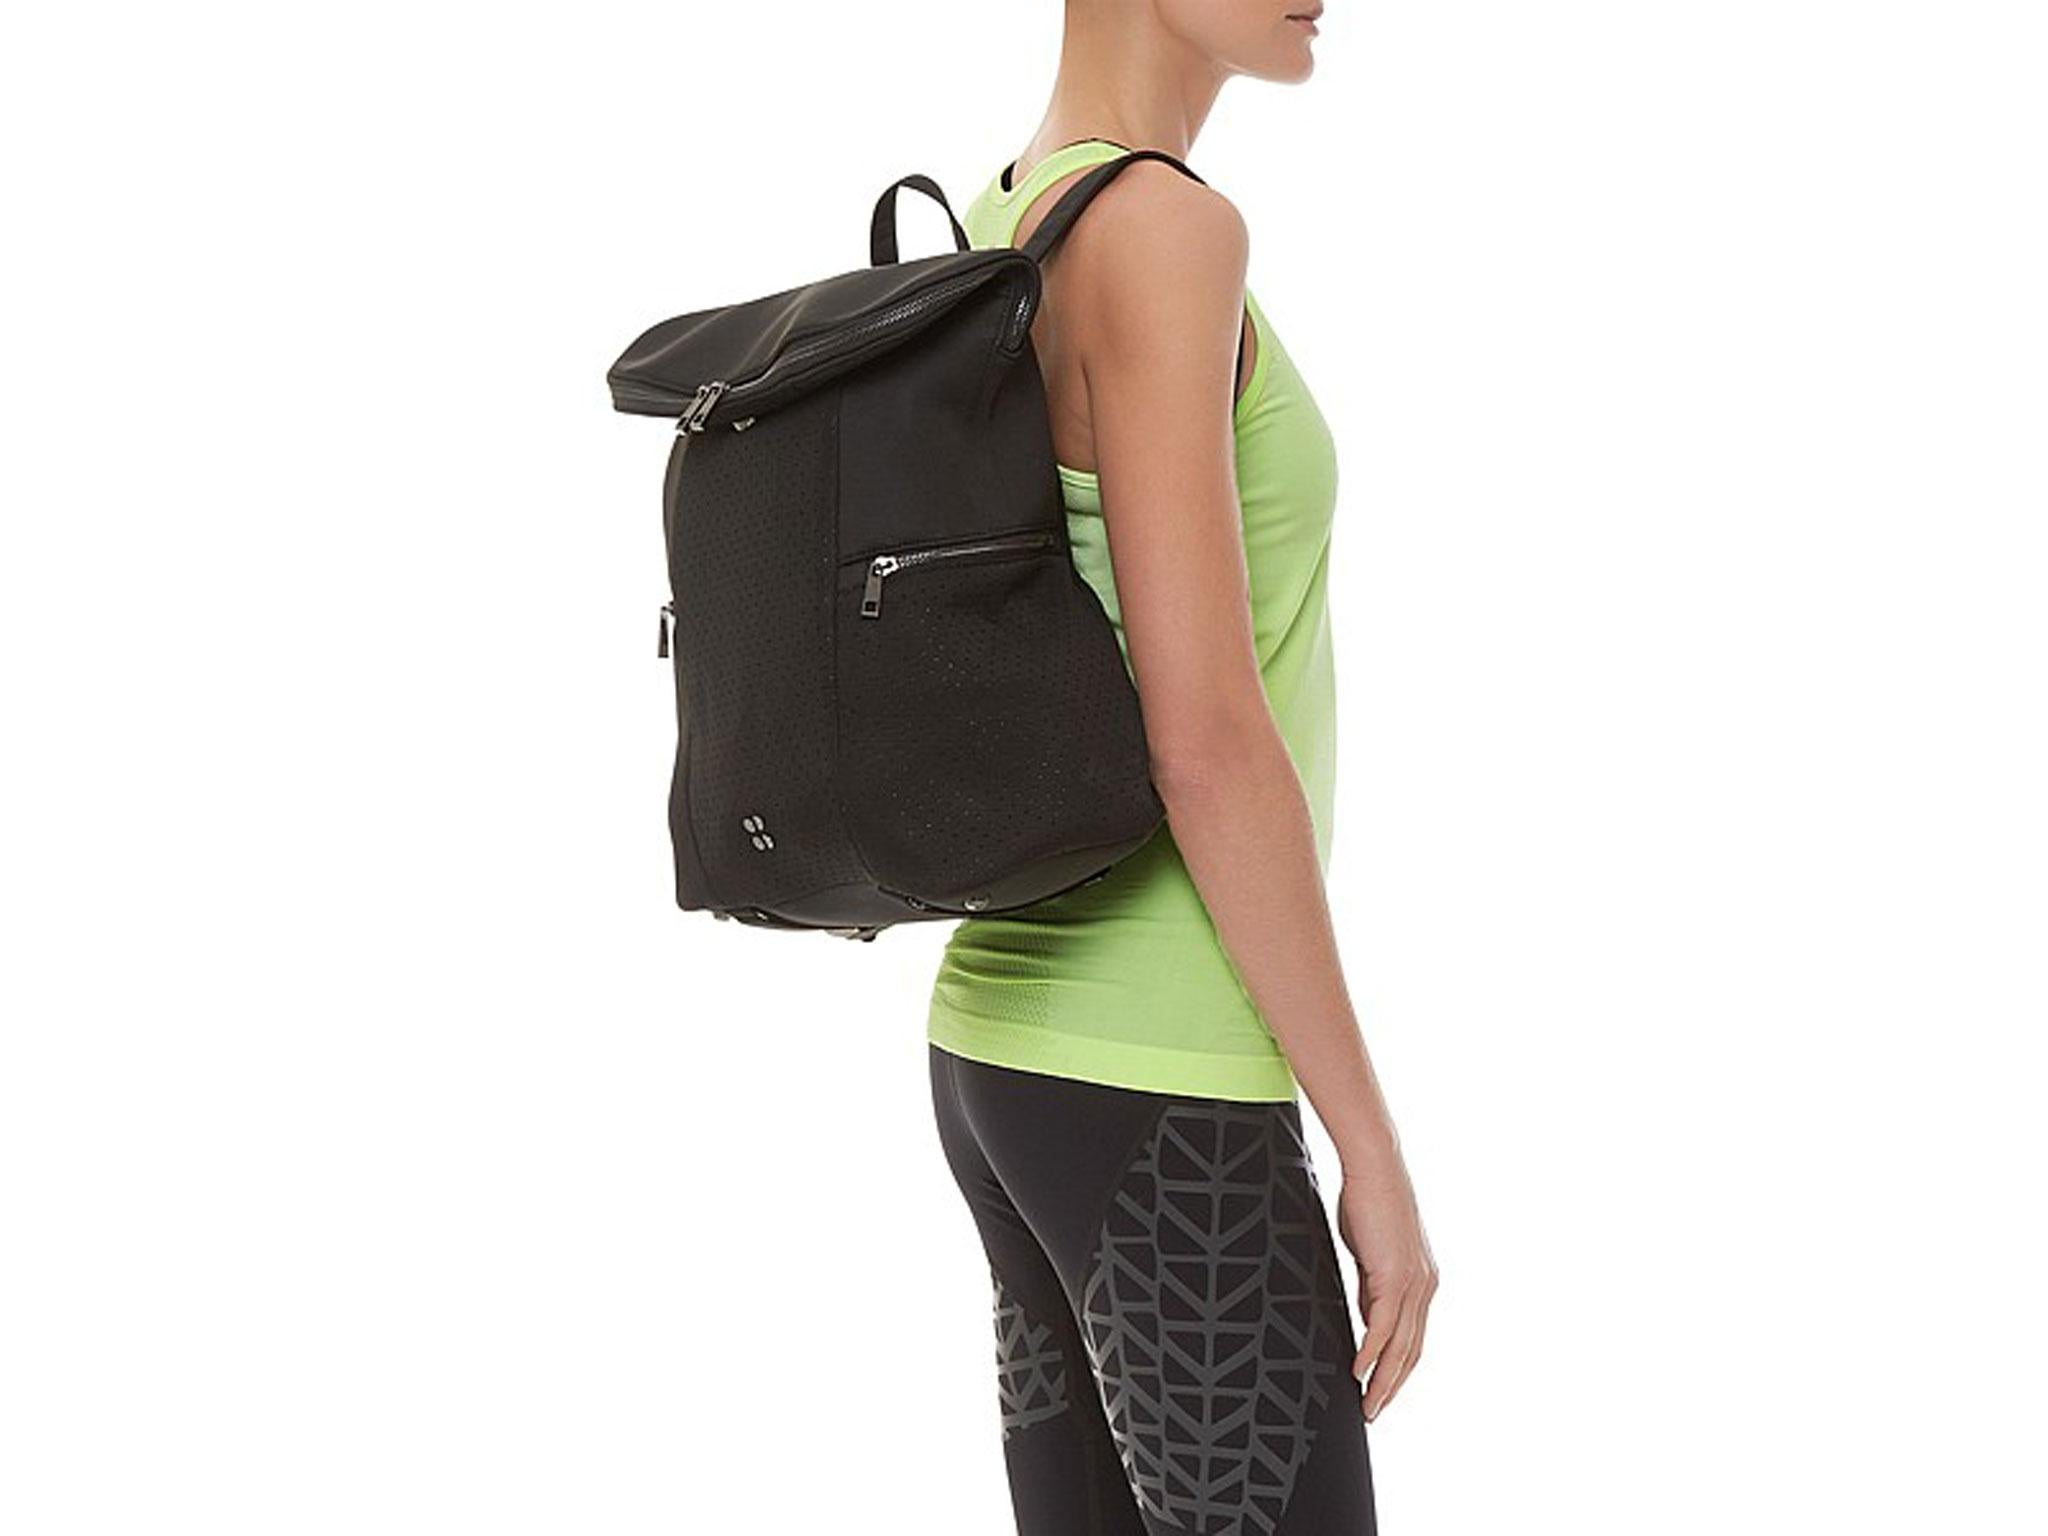 41e6436c7b63 10 best gym bags for women